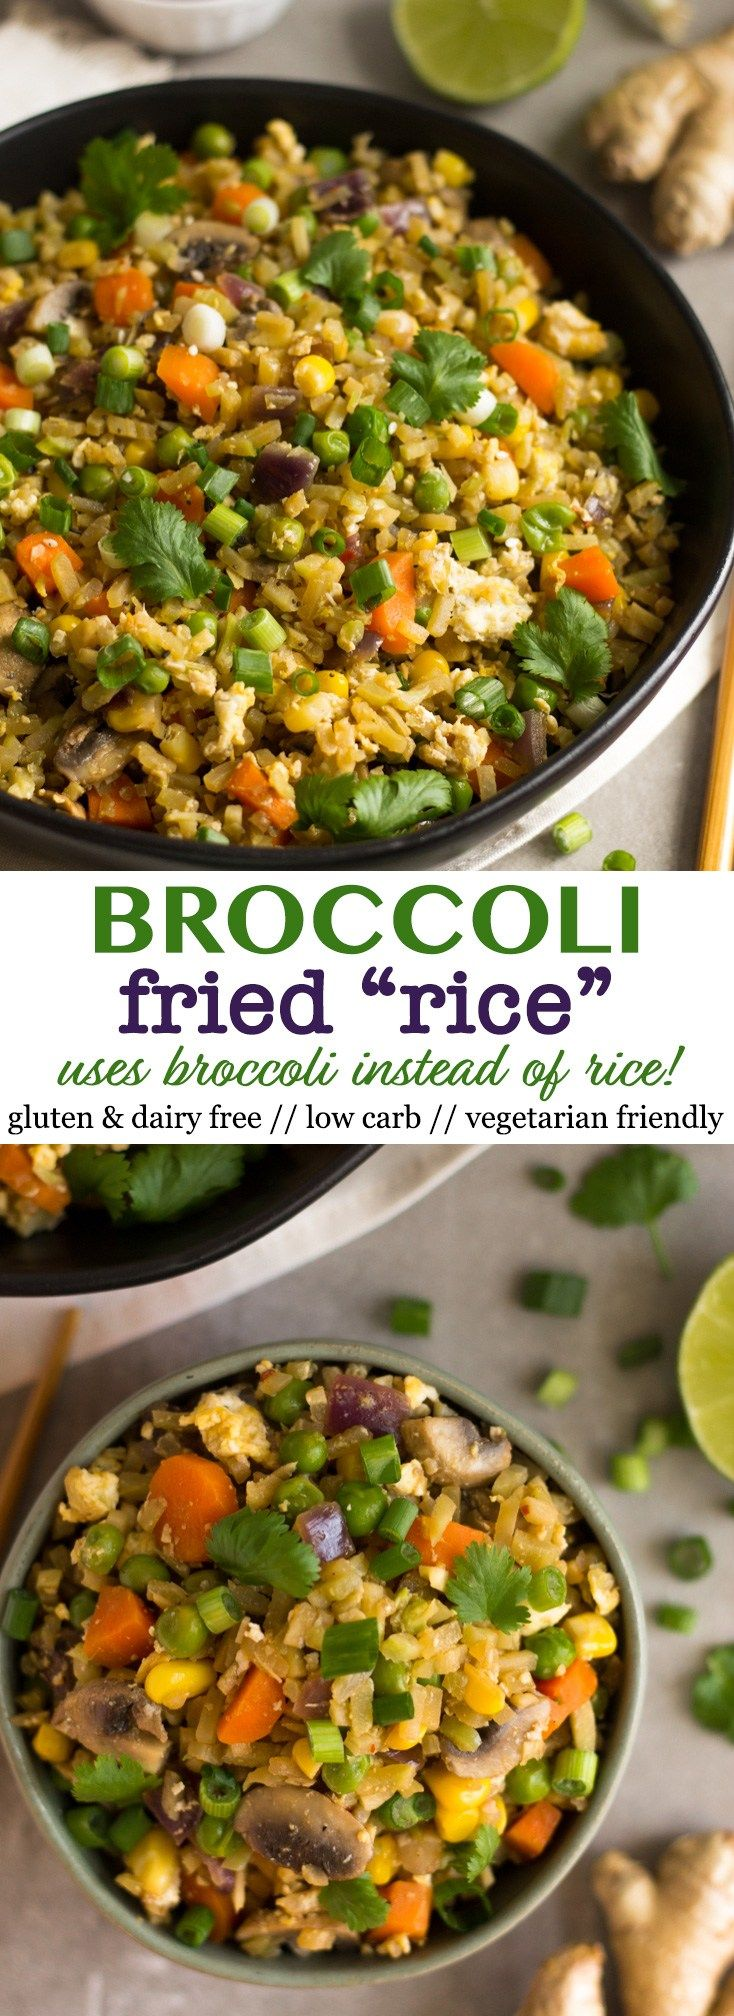 Packed with veggies, this Healthy Broccoli Fried Rice is made from broccoli instead of rice! You only need 15 minutes and it makes a delicious low carb alternative that is gluten free, dairy free, and vegetarian friendly - Eat the Gains #friedrice #glutenfree #vegetarian